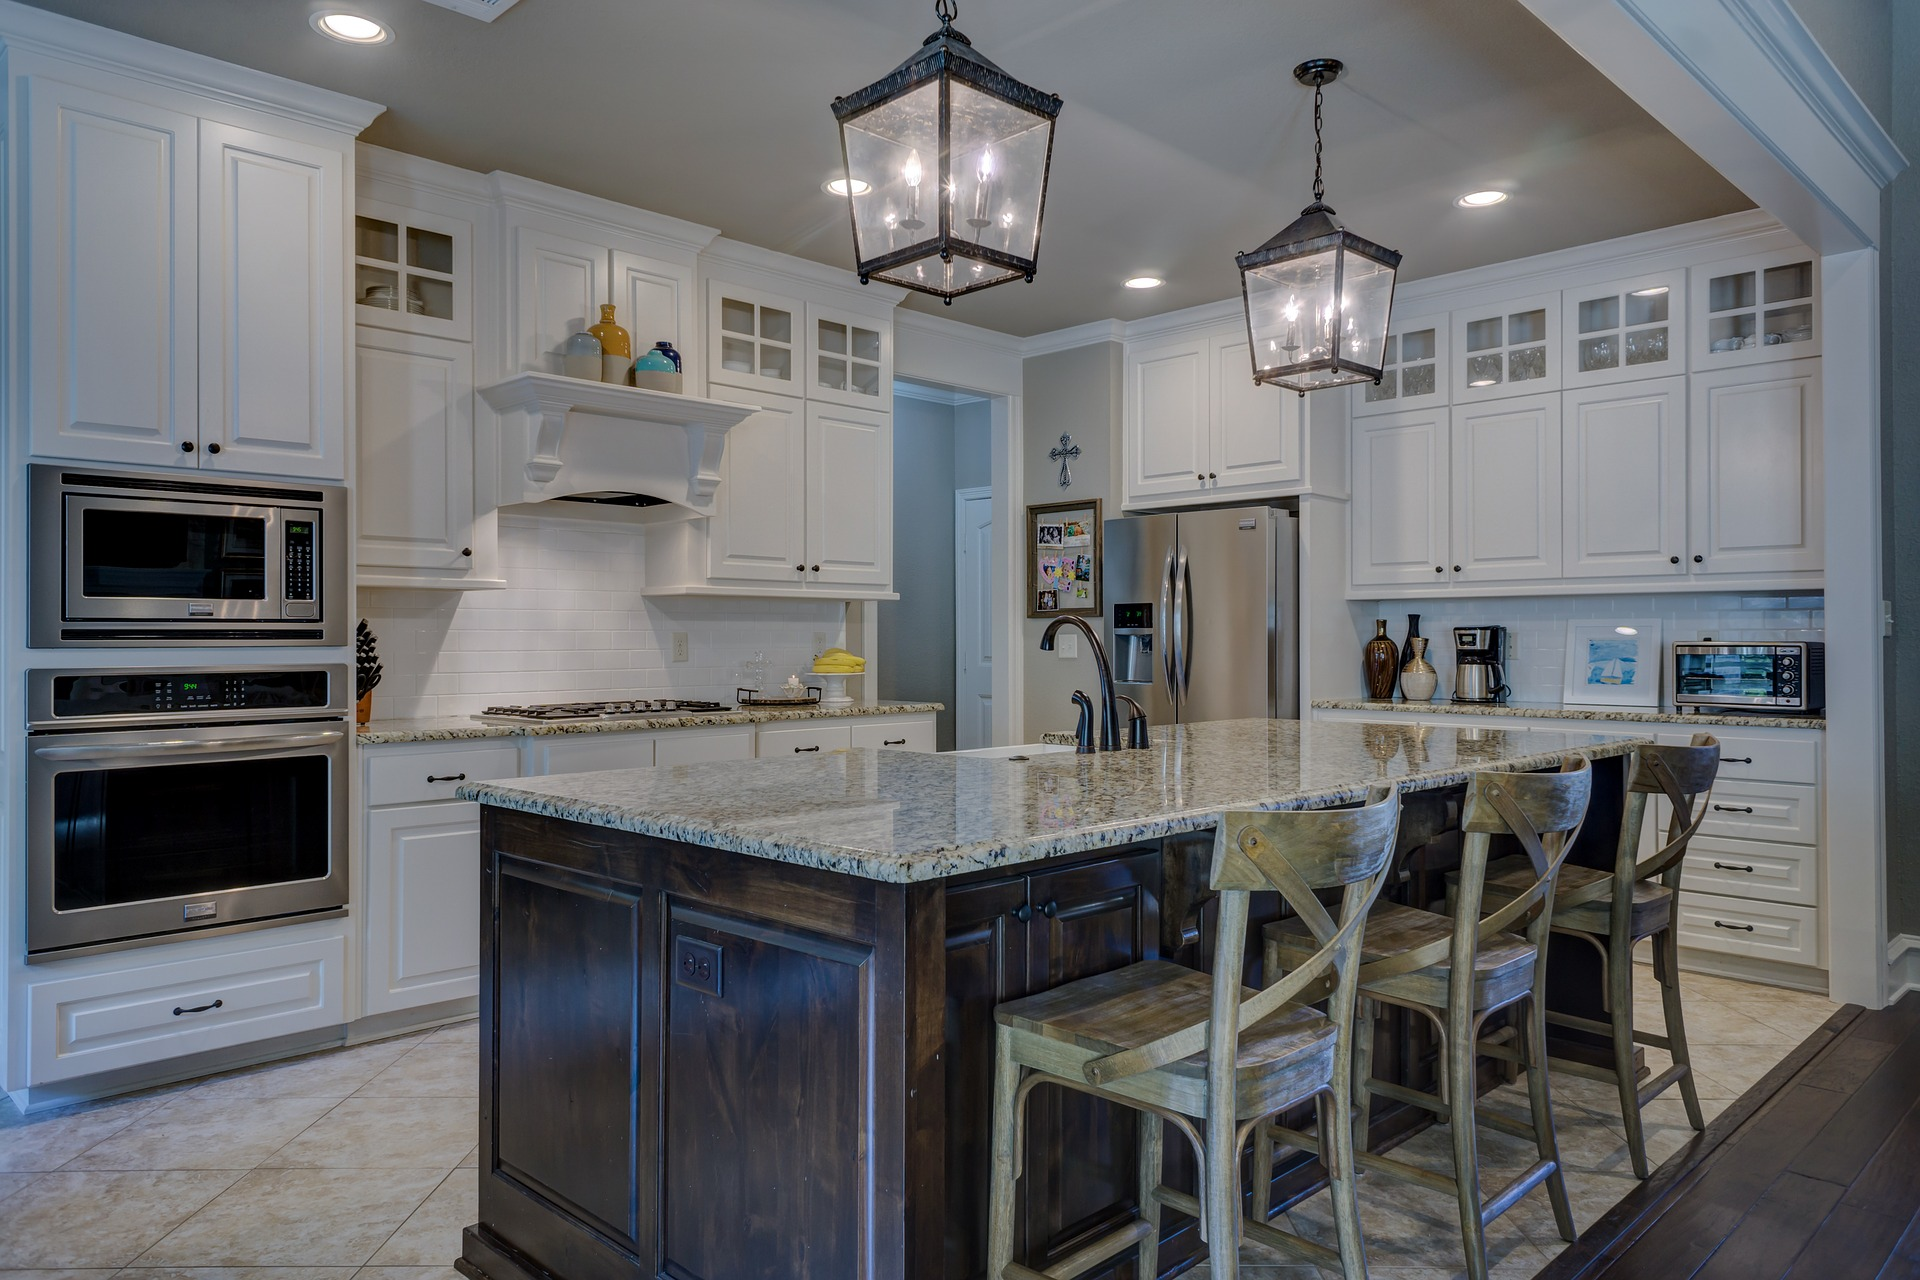 with shades tan granite countertop kitchens kitchen the wood countertops cabinet highlight gray bayharbor cabinets neutral and great quietmoose remarkable brown tones darkcabinets dark in of reddish darkgranite